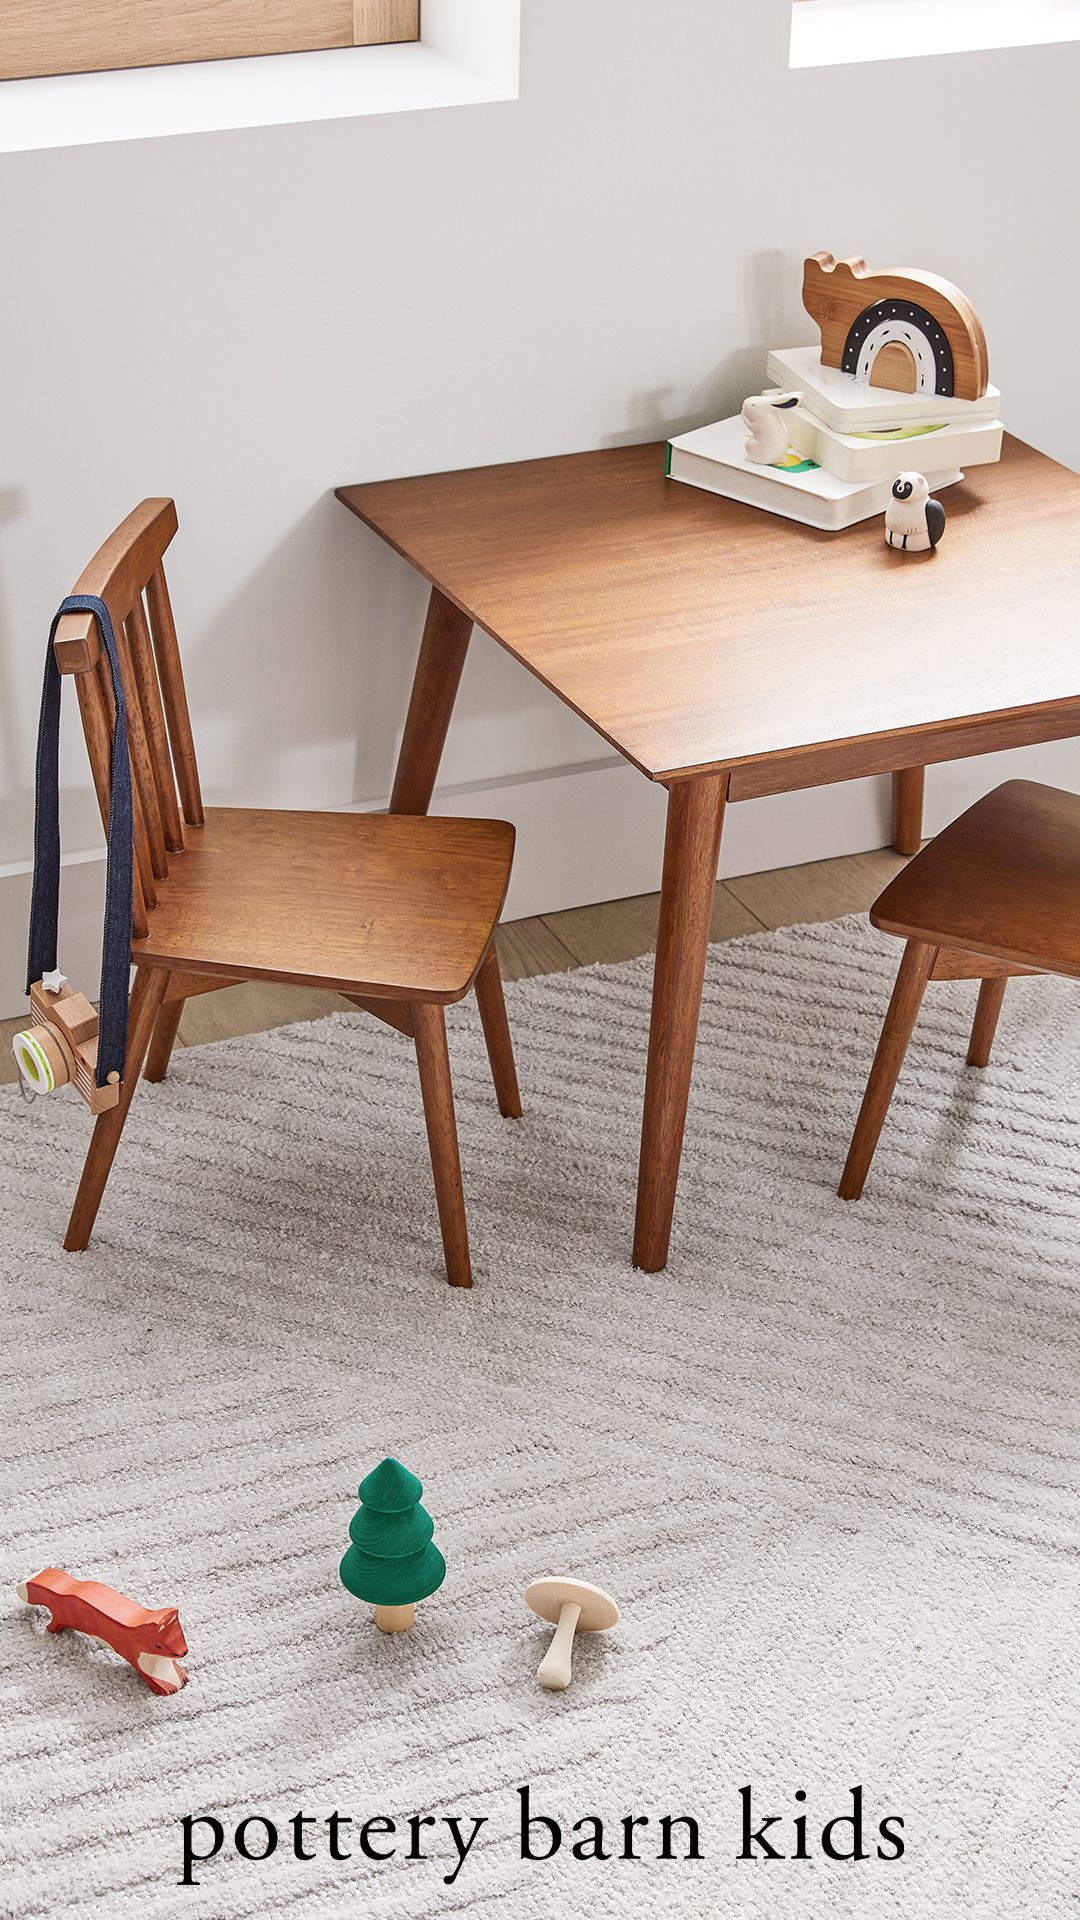 pottery barn kids play table on west elm x pbk mid century my first play table play table kids play table table pinterest